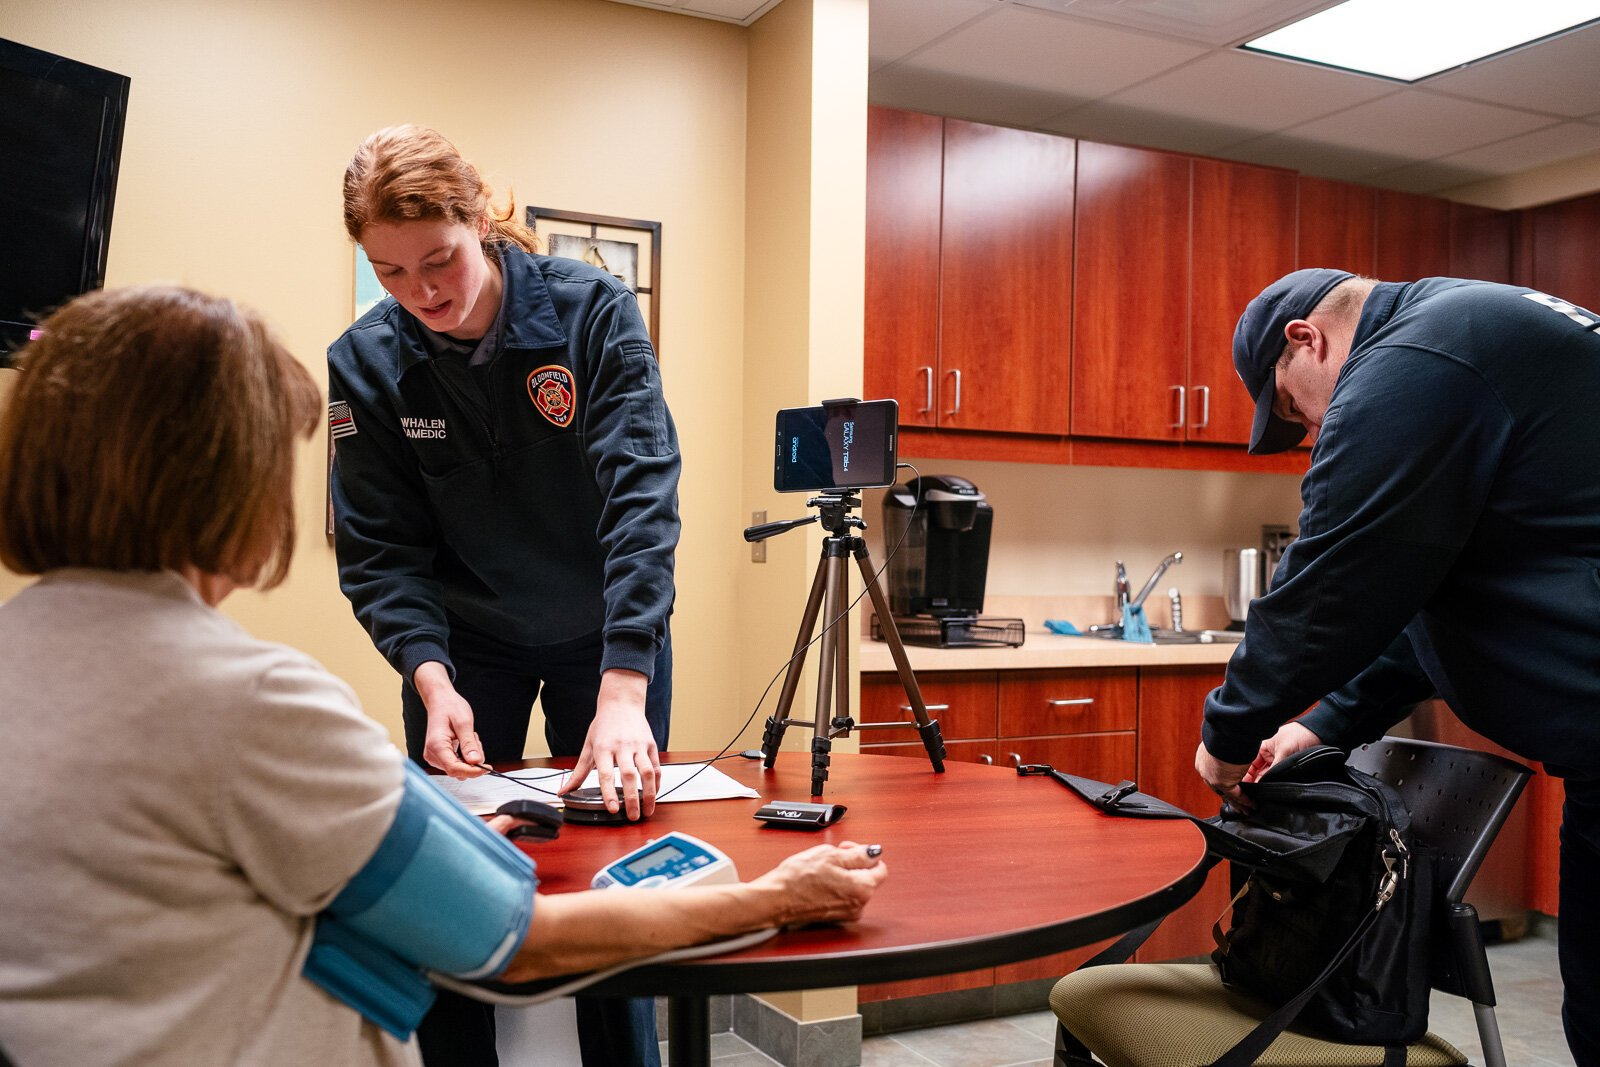 Community integrated paramedics Kim Whalen and Lt. Kevin Bailey of the Bloomfield Township Fire Department conduct a patient visit.